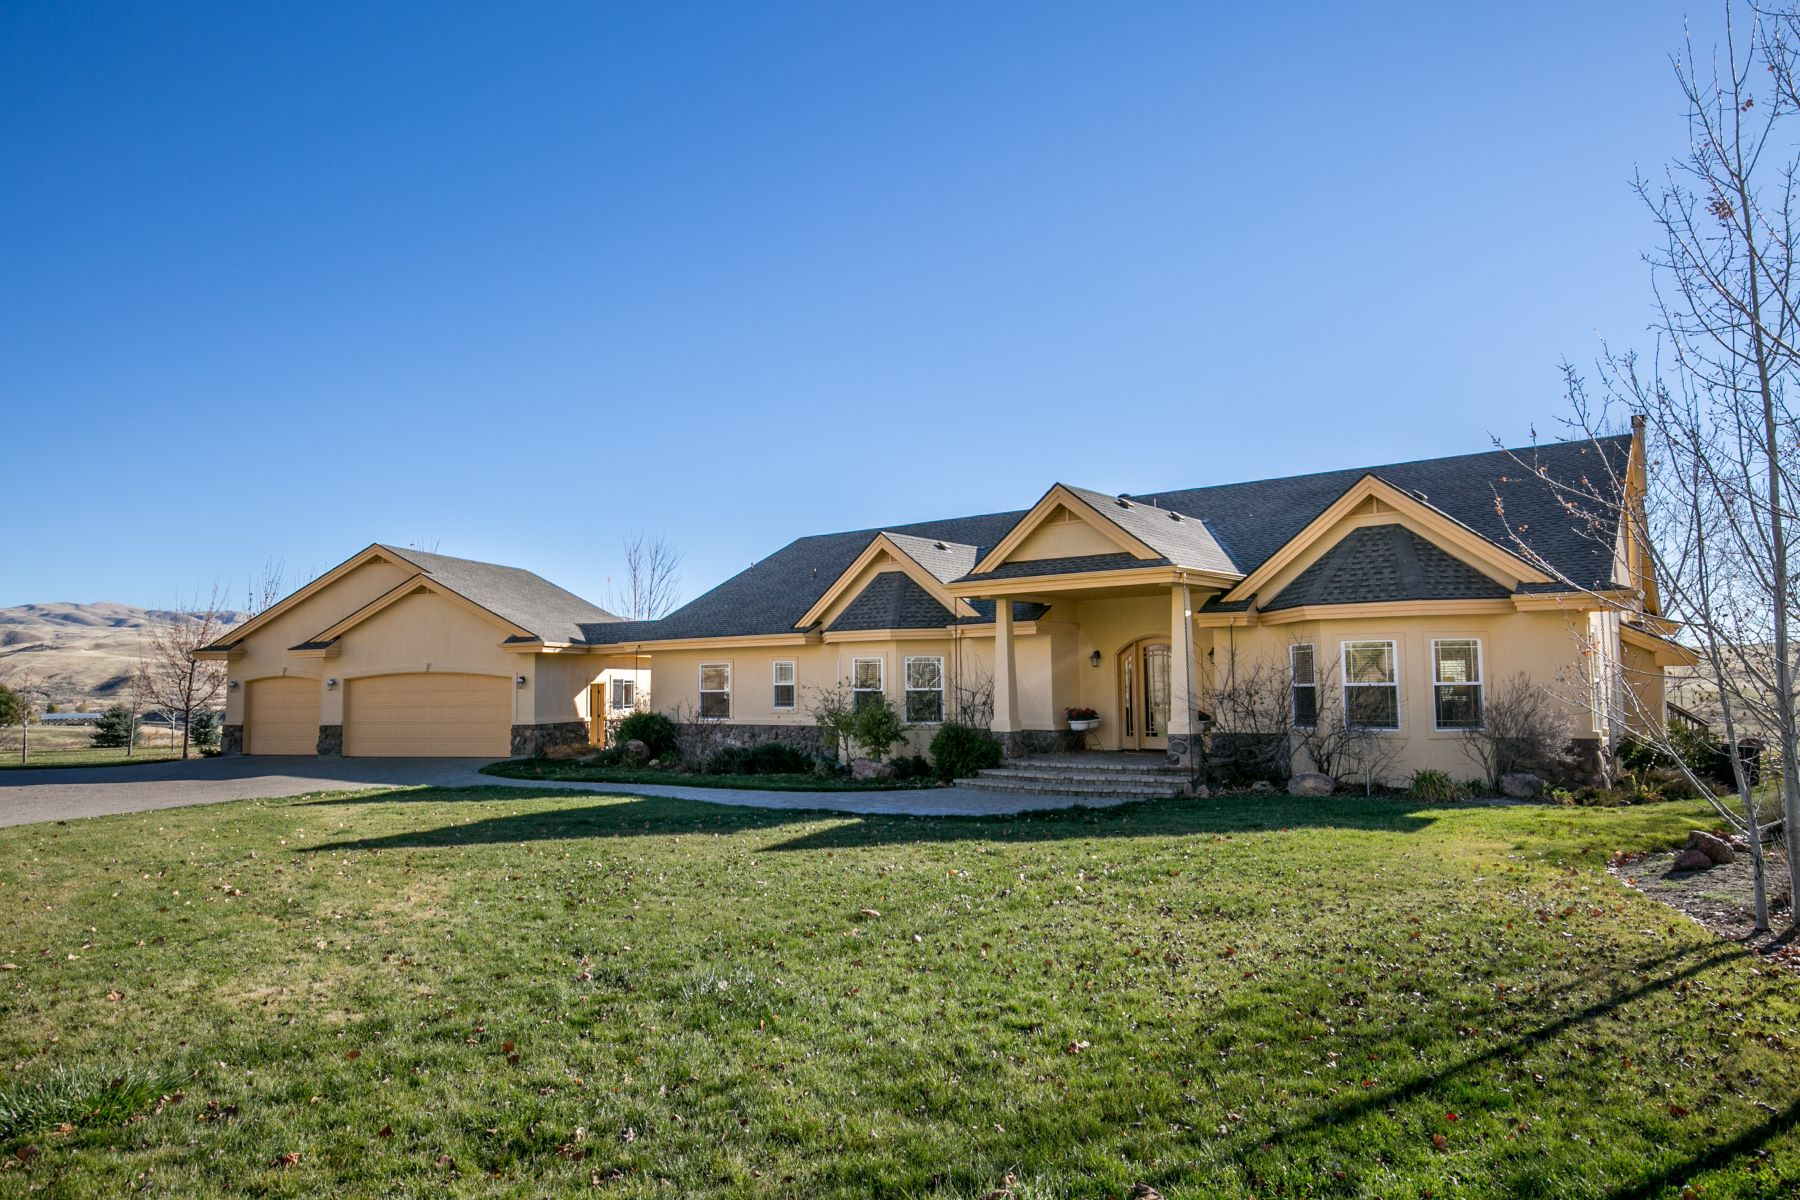 Single Family Homes for Active at 5900 Pearl Road, Emmett 5900 Pearl Rd Emmett, Idaho 83616 United States